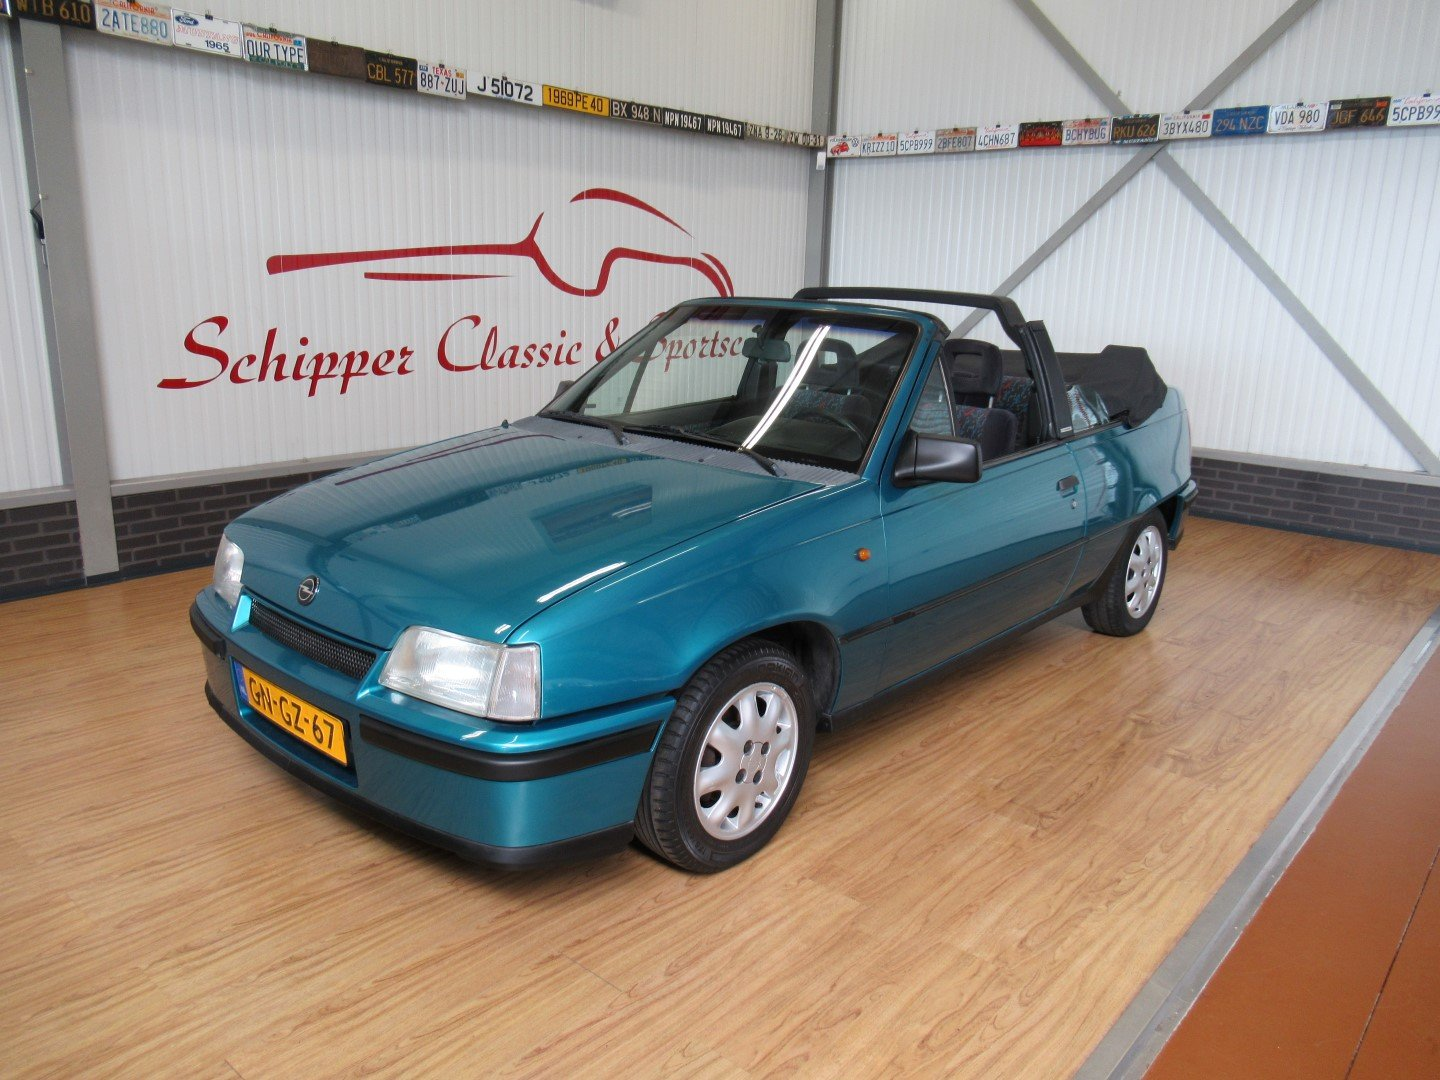 1993 Opel Kadett E Cabrio Edition 1.6i Bertone last model year For Sale (picture 1 of 6)